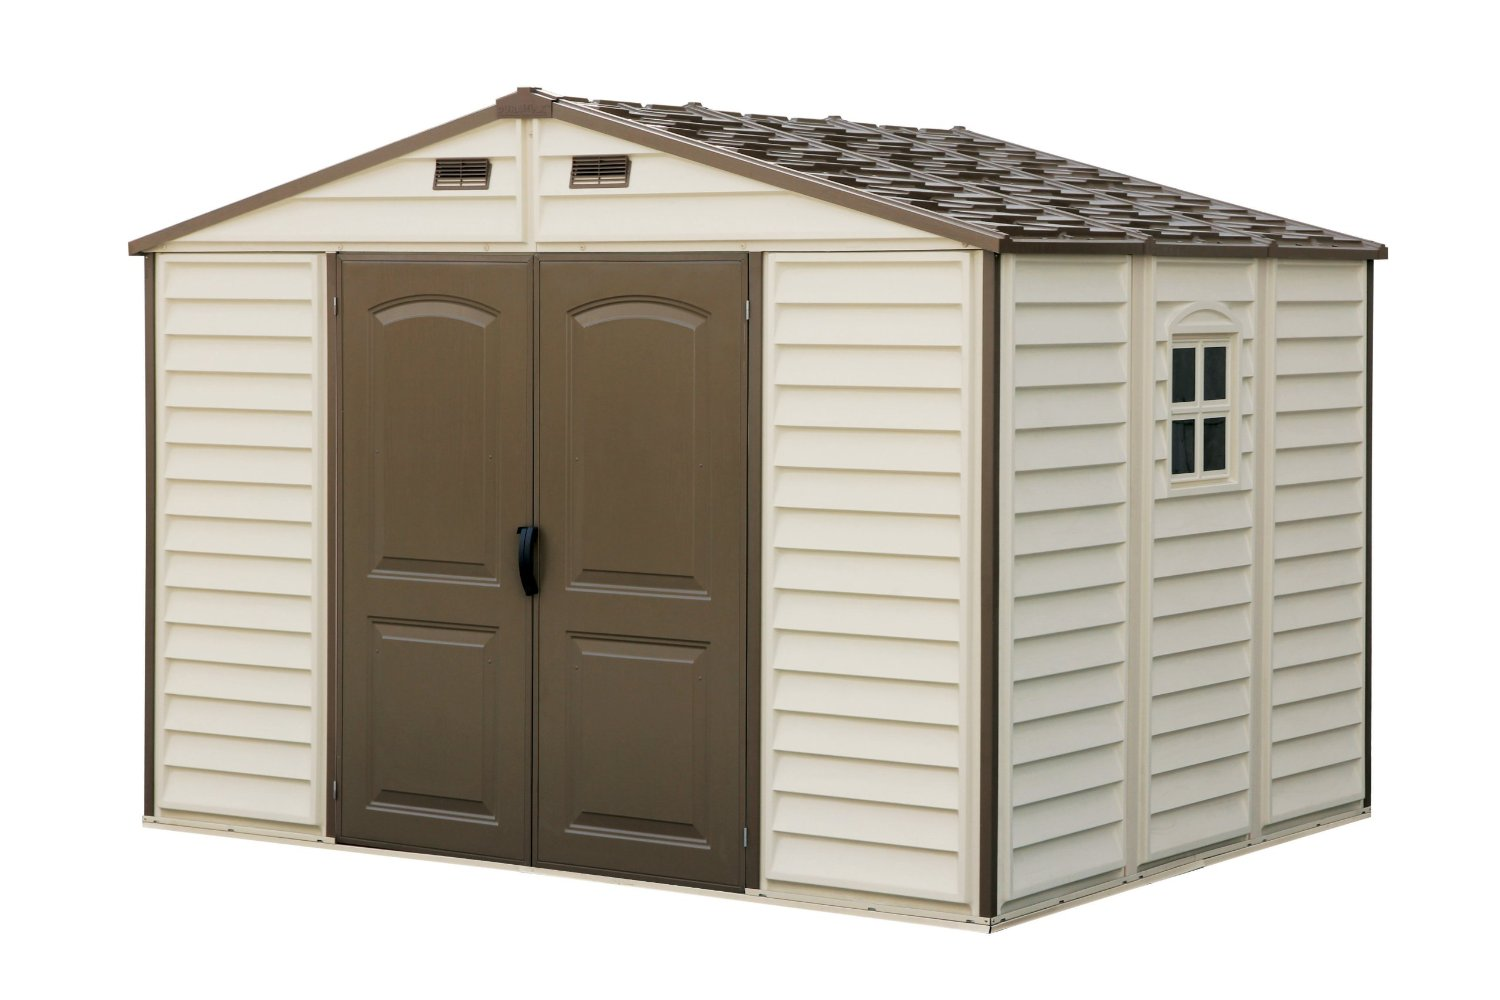 Woodside 10 x 8 Vinyl Storage shed with Foundation and three fixed windows